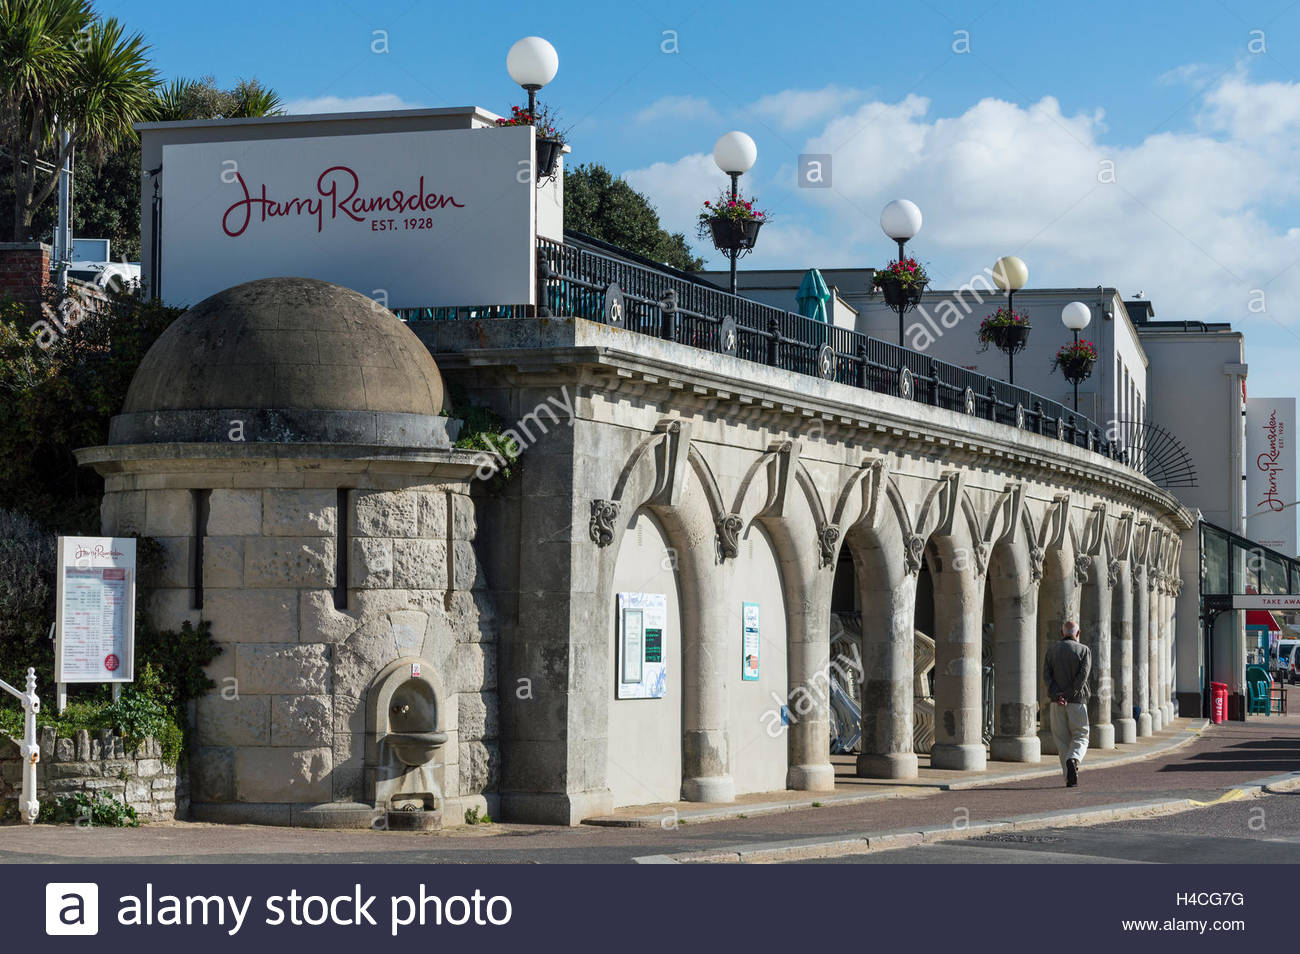 Harry Ramsden Fish and Chip shop on Bournemouth Sea Front, Dorset, England, UK, GB, United Kingdom, Great Britain, Stock Photo